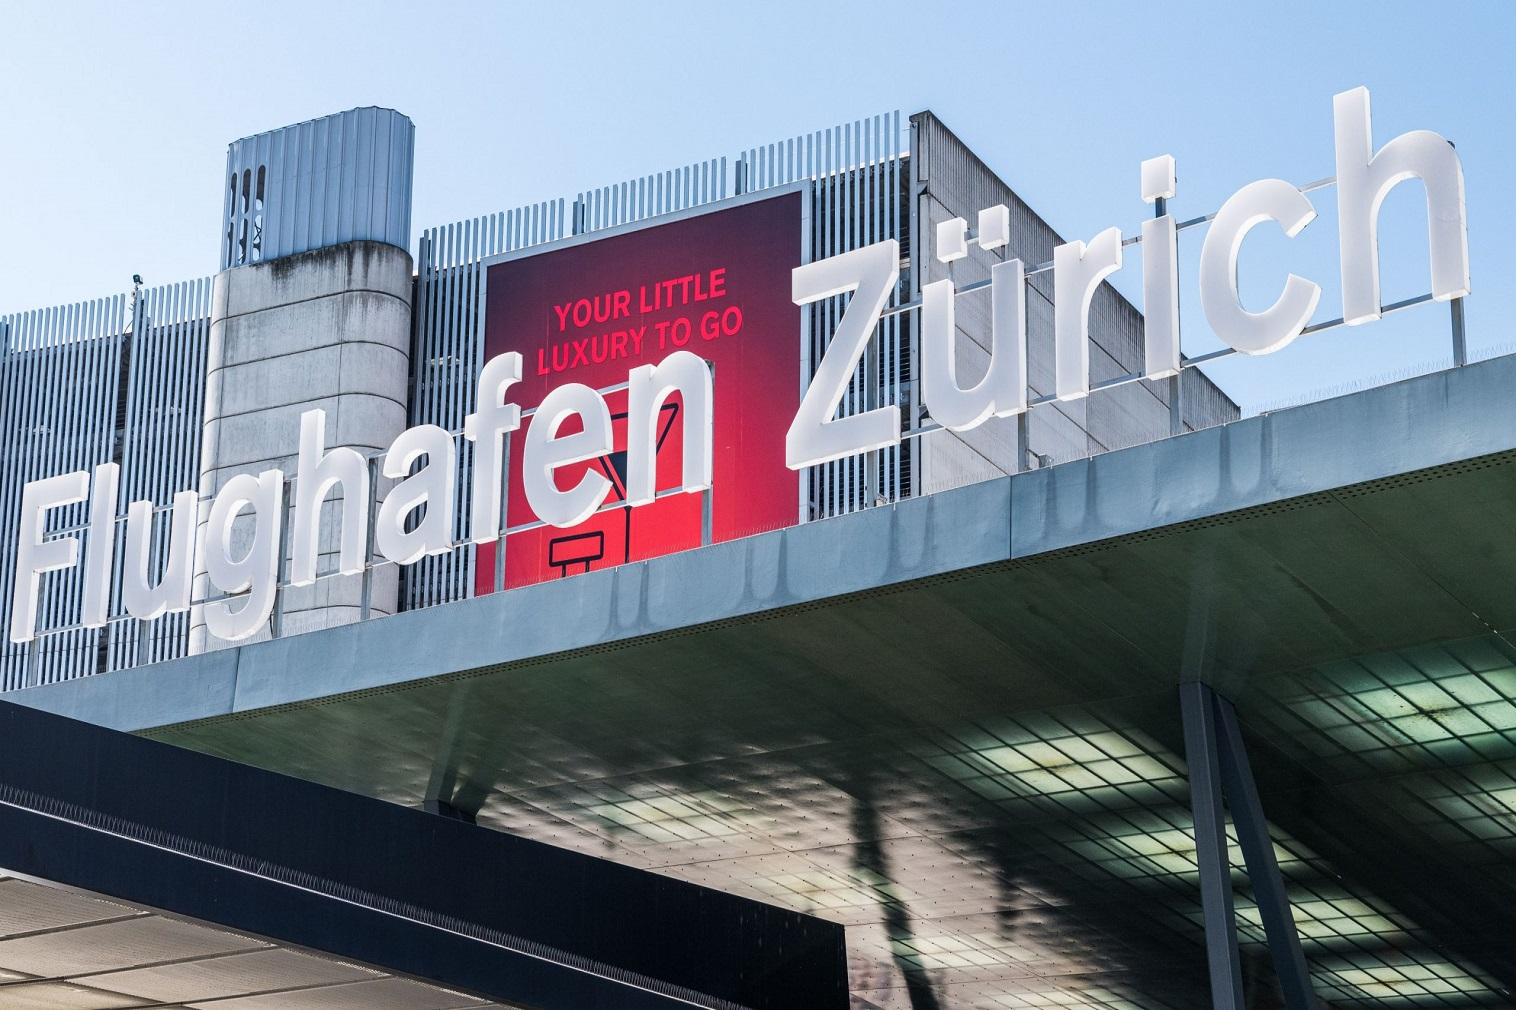 Zurich Airport has received the prestigious World Travel Award for the best airport in Europe for the 17th time in succession.